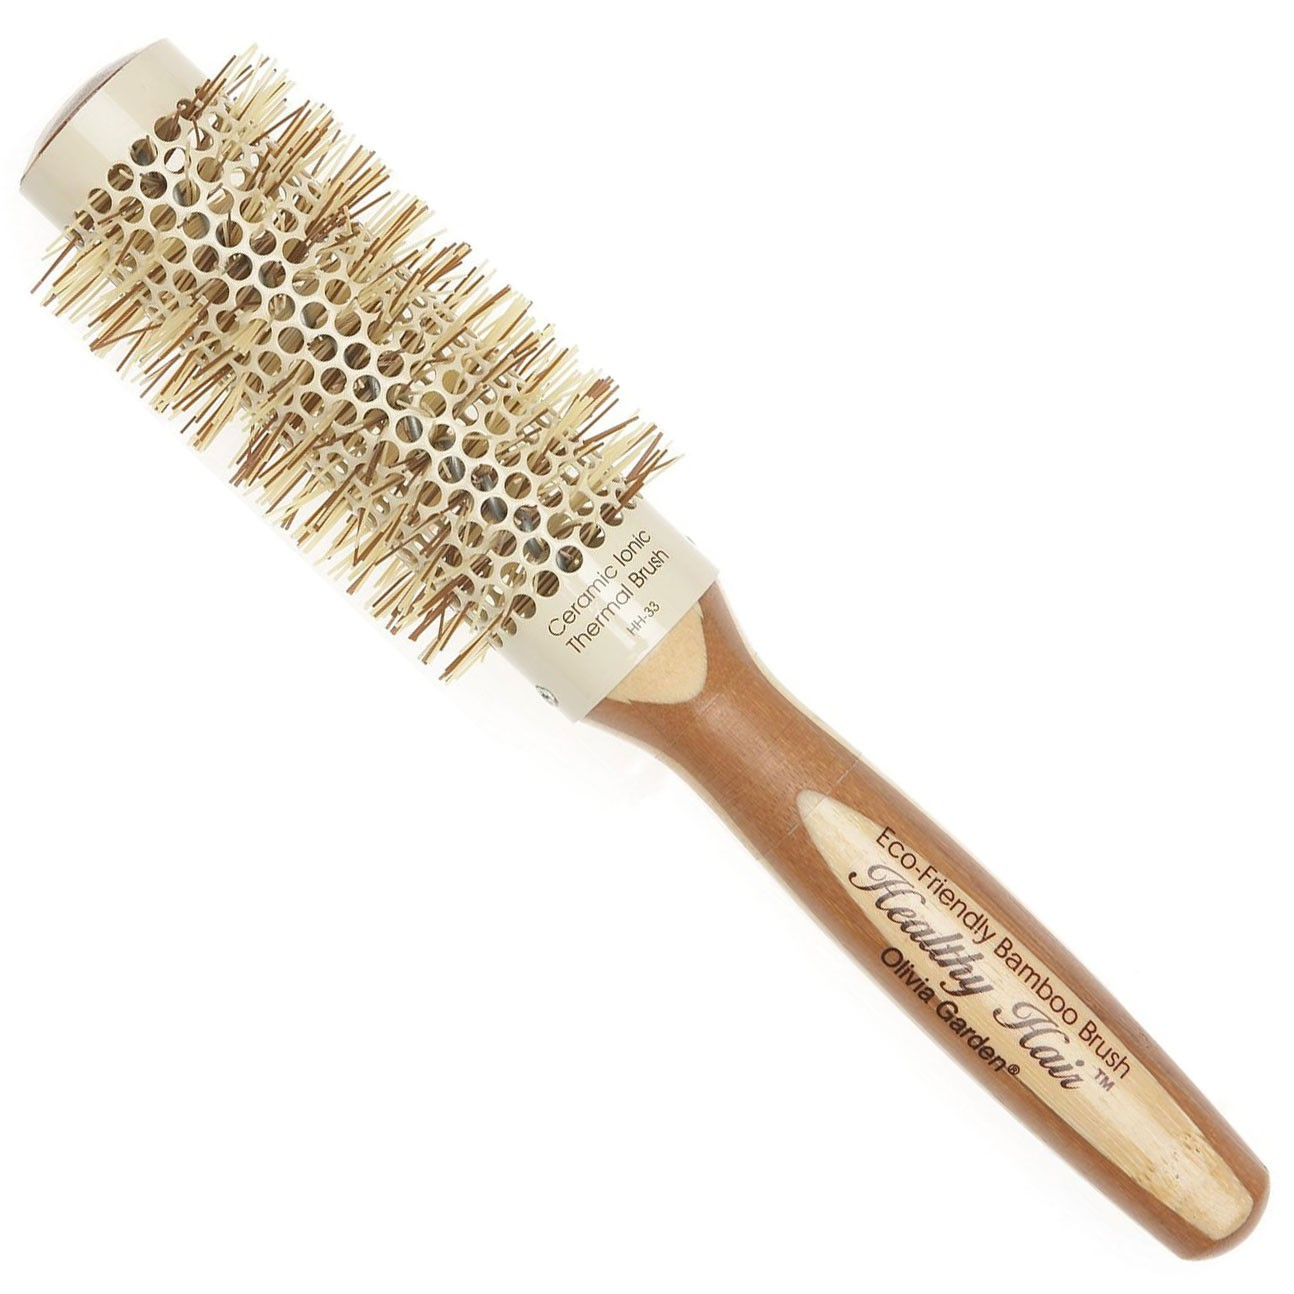 Olivia Garden Eco Friendly Bamboo Brush HH-33